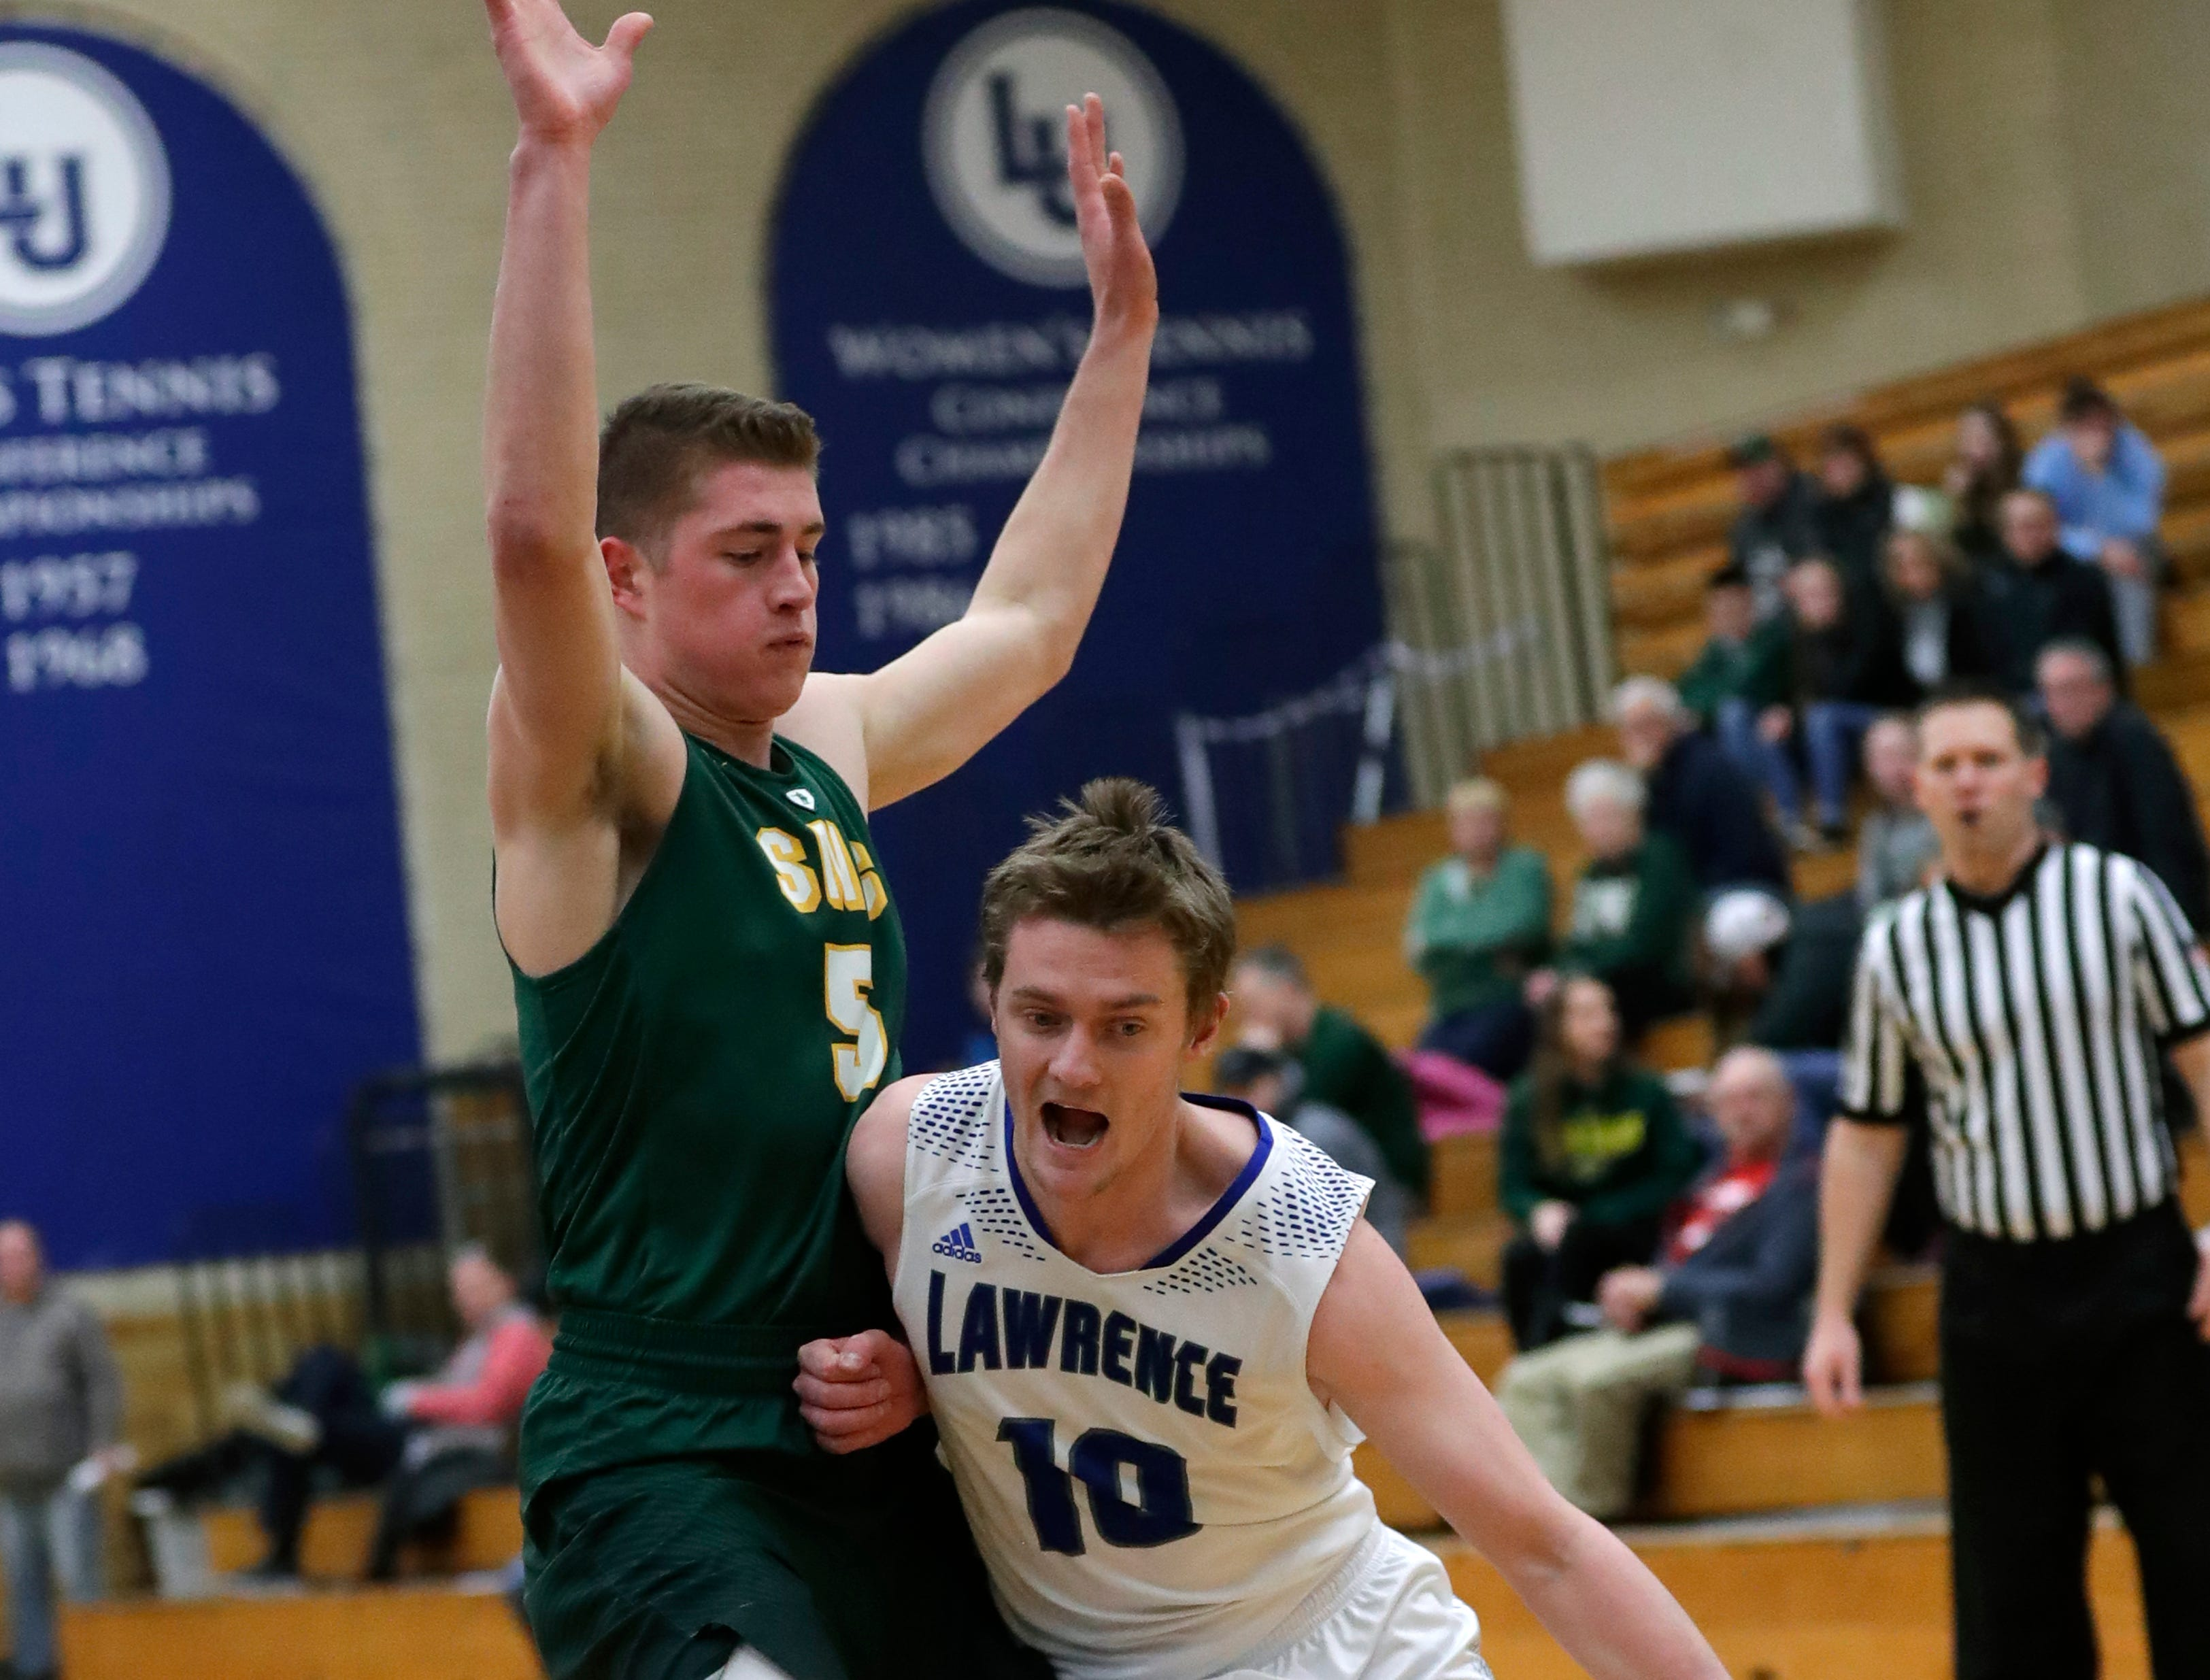 Lawrence University's Brad Sendell (10) drives to the basket against St. Norbert College's Joe Ciriacks (5) during their men's basketball game Thursday, January 31, 2019, at Alexander Gymnasium in Appleton, Wis. 